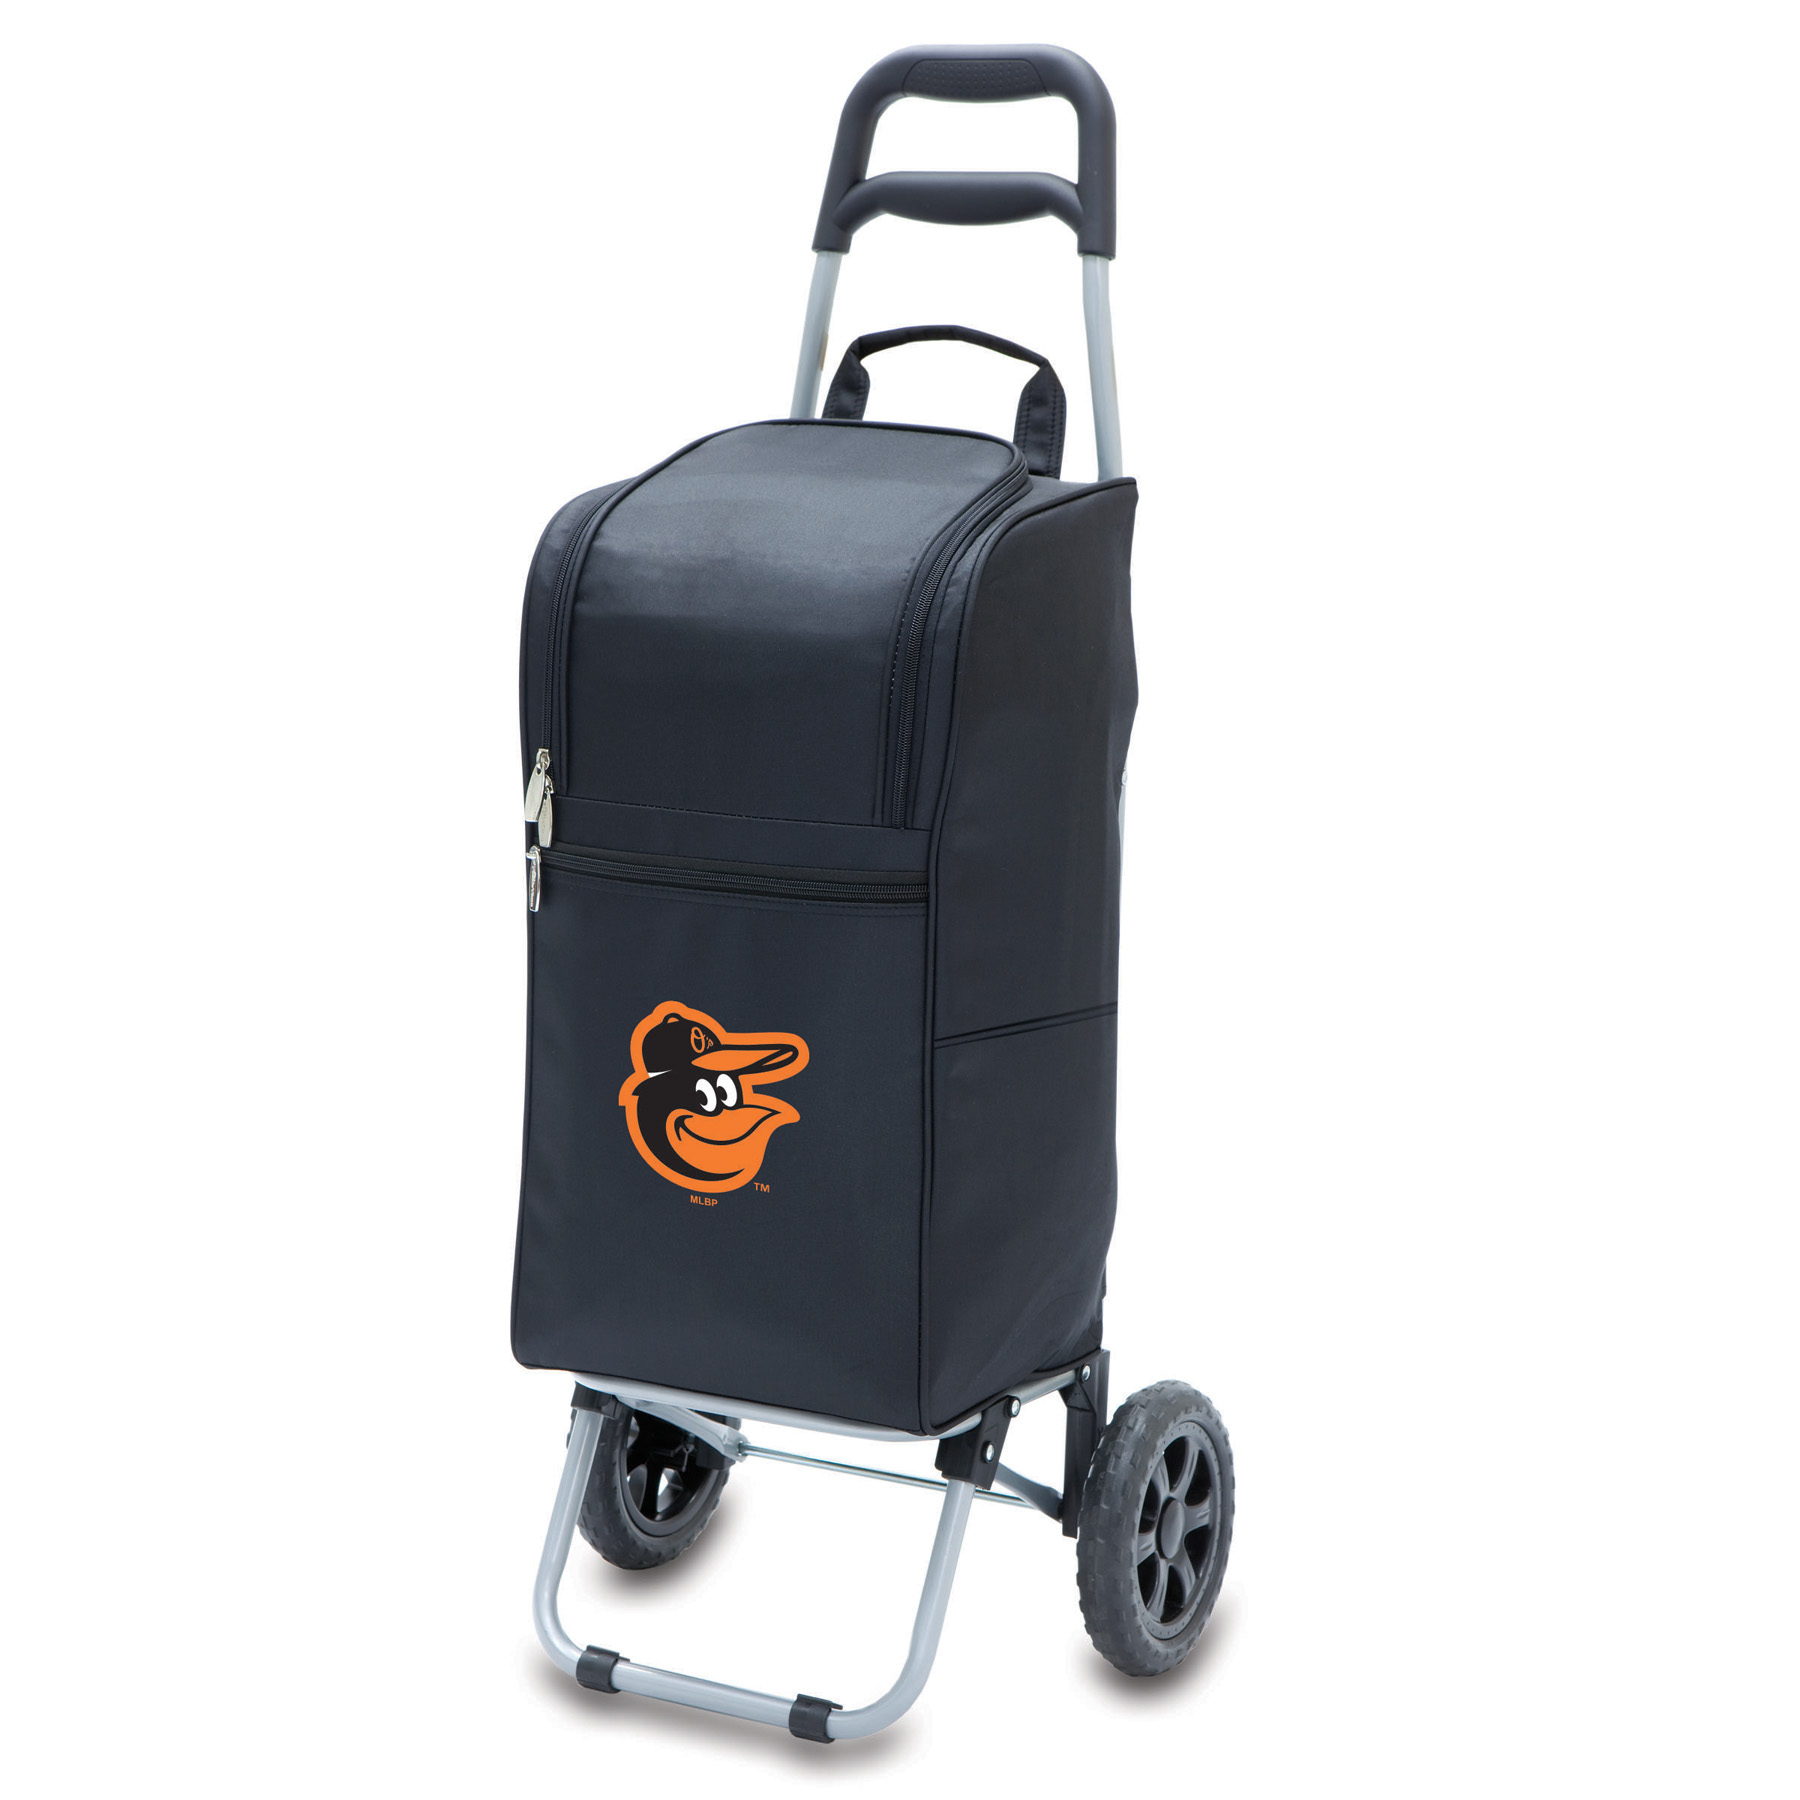 Picnic Time Cart Cooler - MLB - Black PartNumber: 00671996000P KsnValue: 00671996000 MfgPartNumber: 545-00-175-034-3